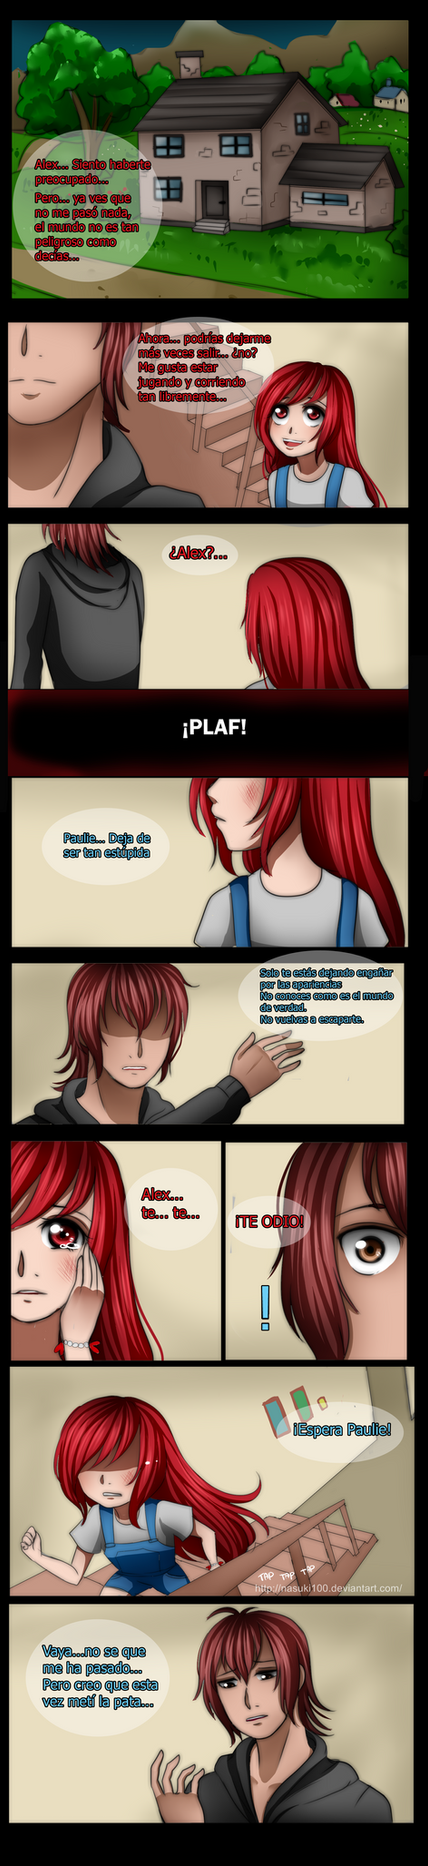 Cherry Pau - pag 18 [translation in description] by Nasuki100